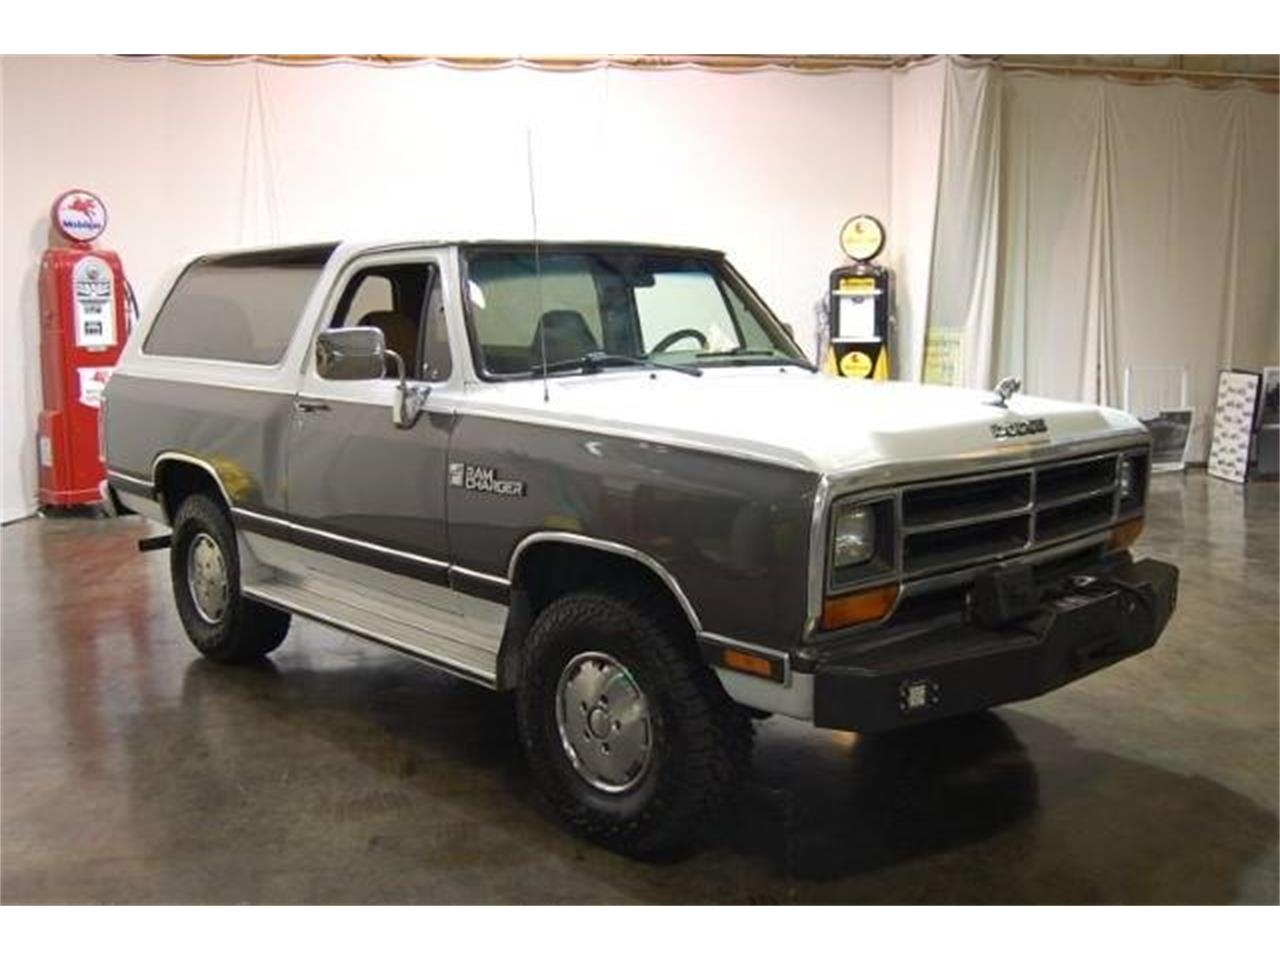 1988 Dodge Ramcharger For Sale Classiccars Com Cc 1155015